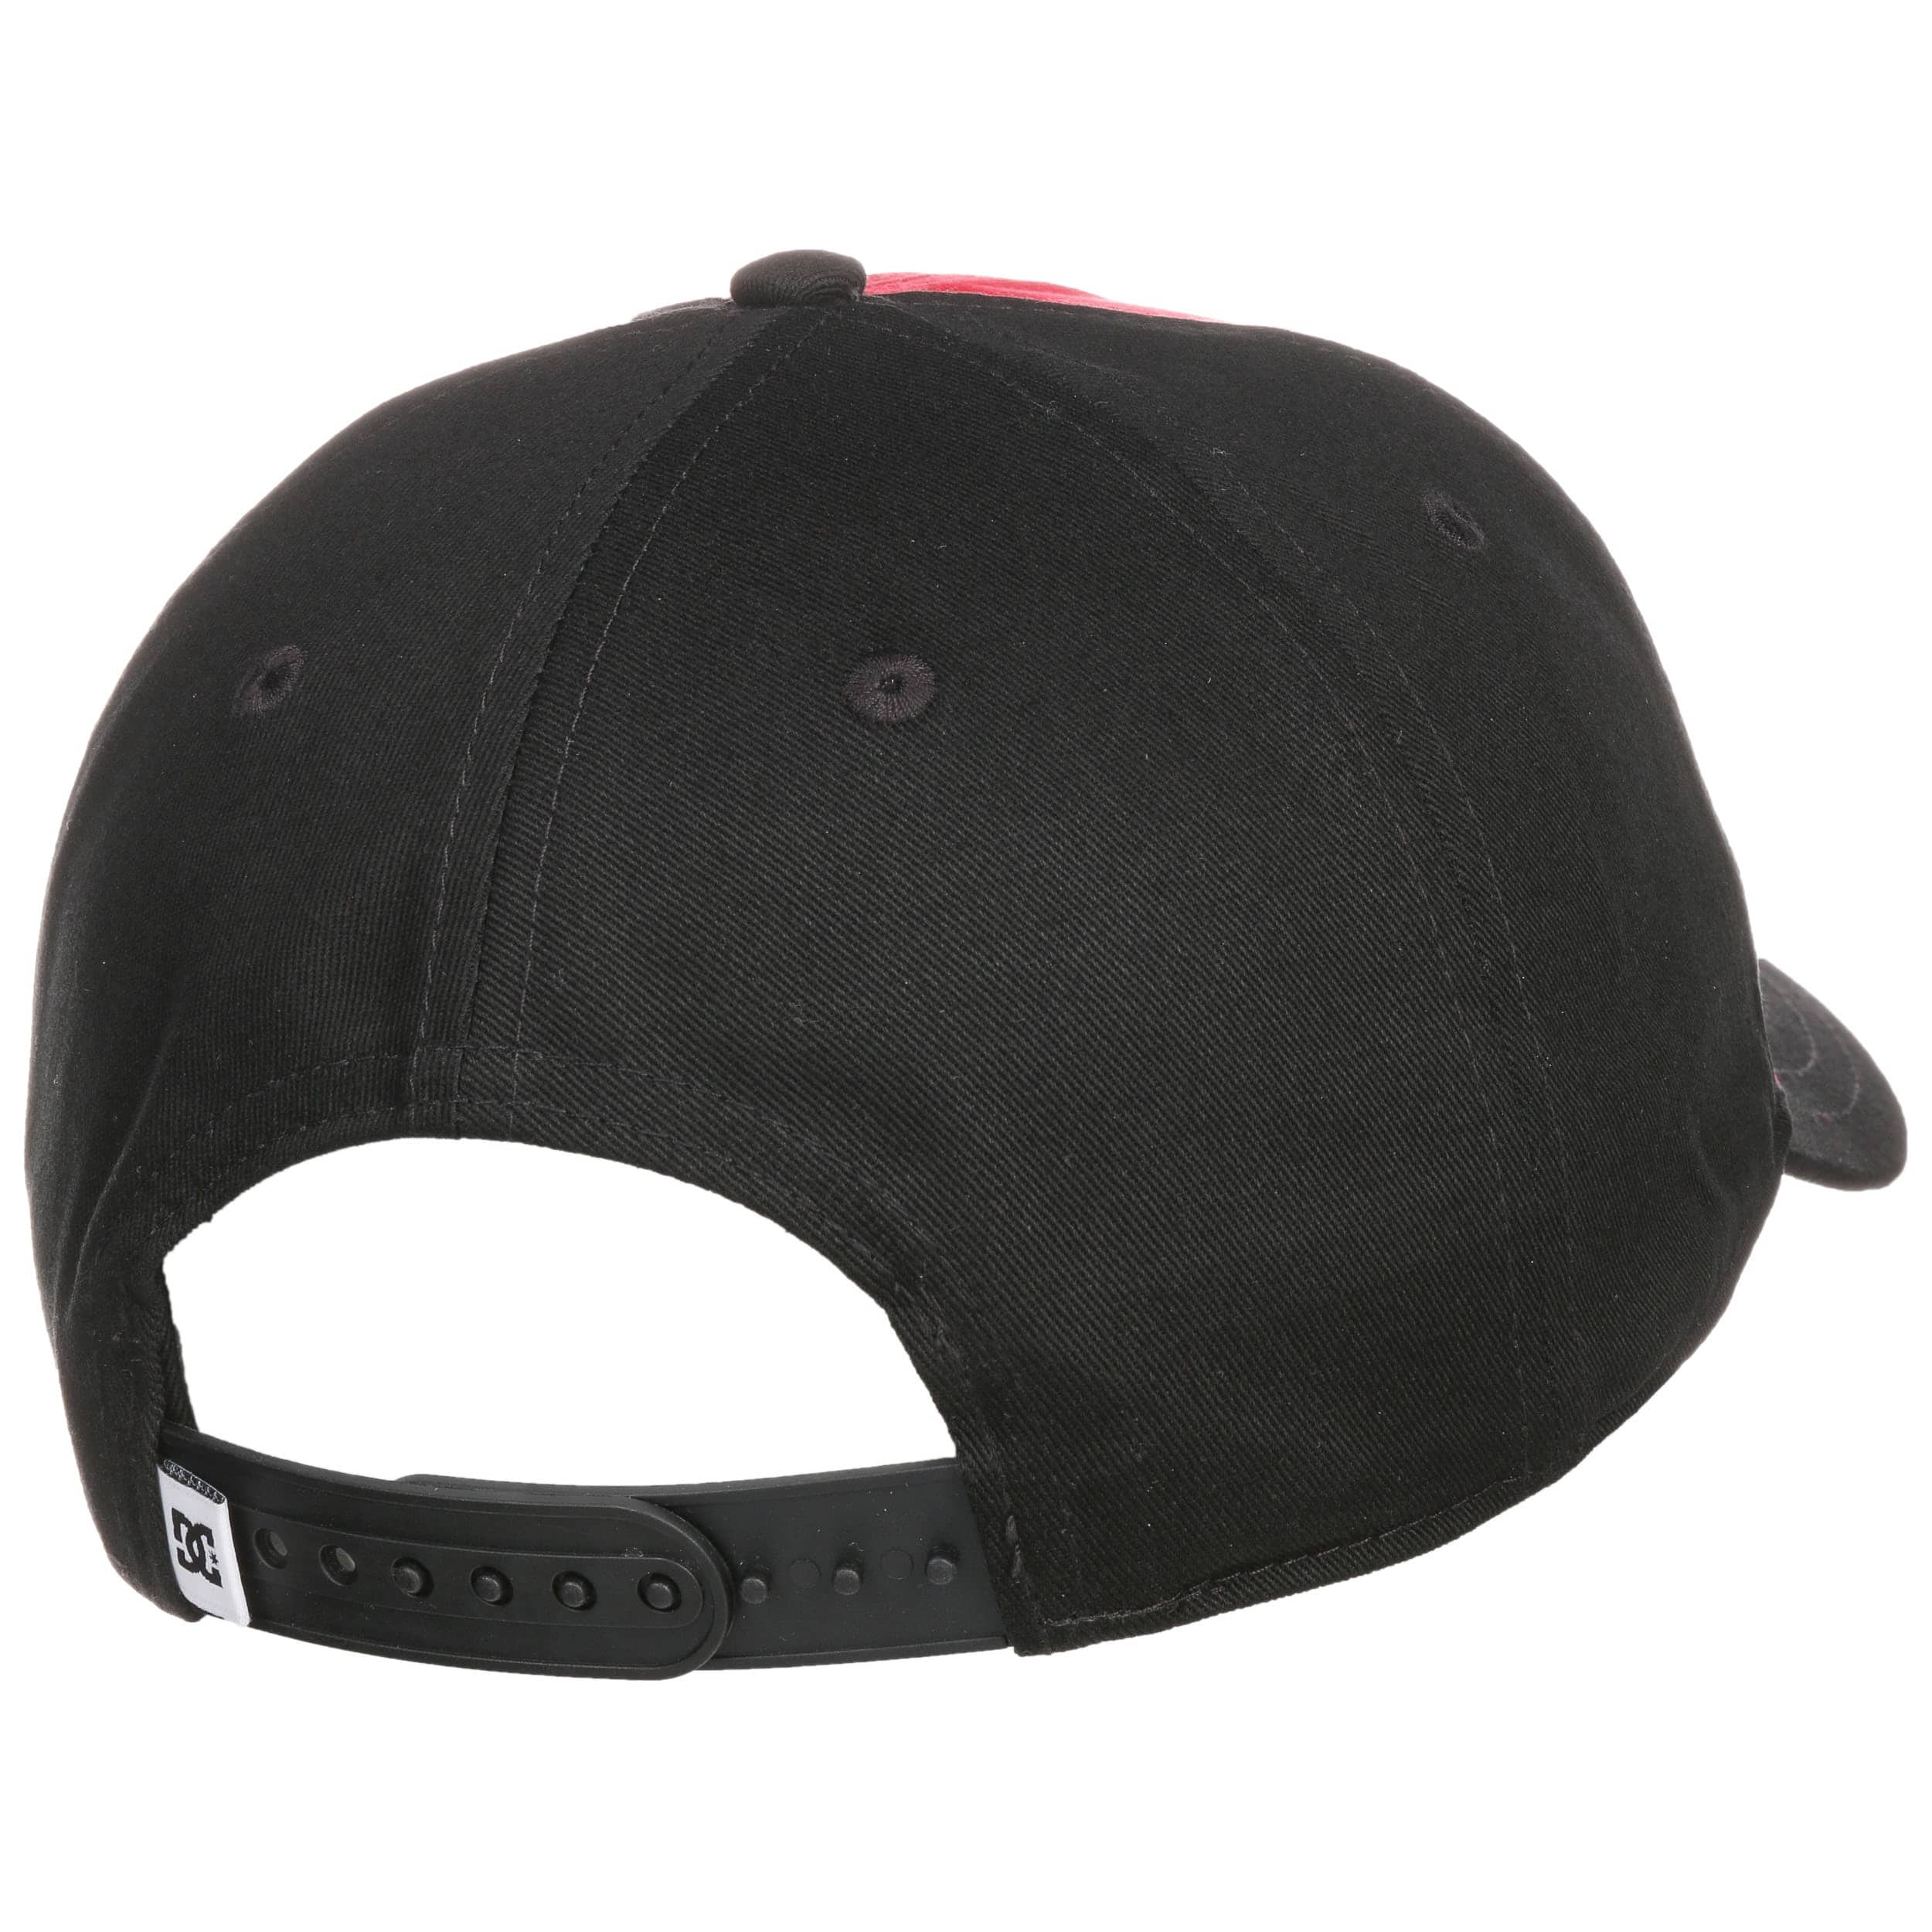 ... Gorra Snapback Spinner by DC Shoes Co - negro 3 ... 78d22c48a02